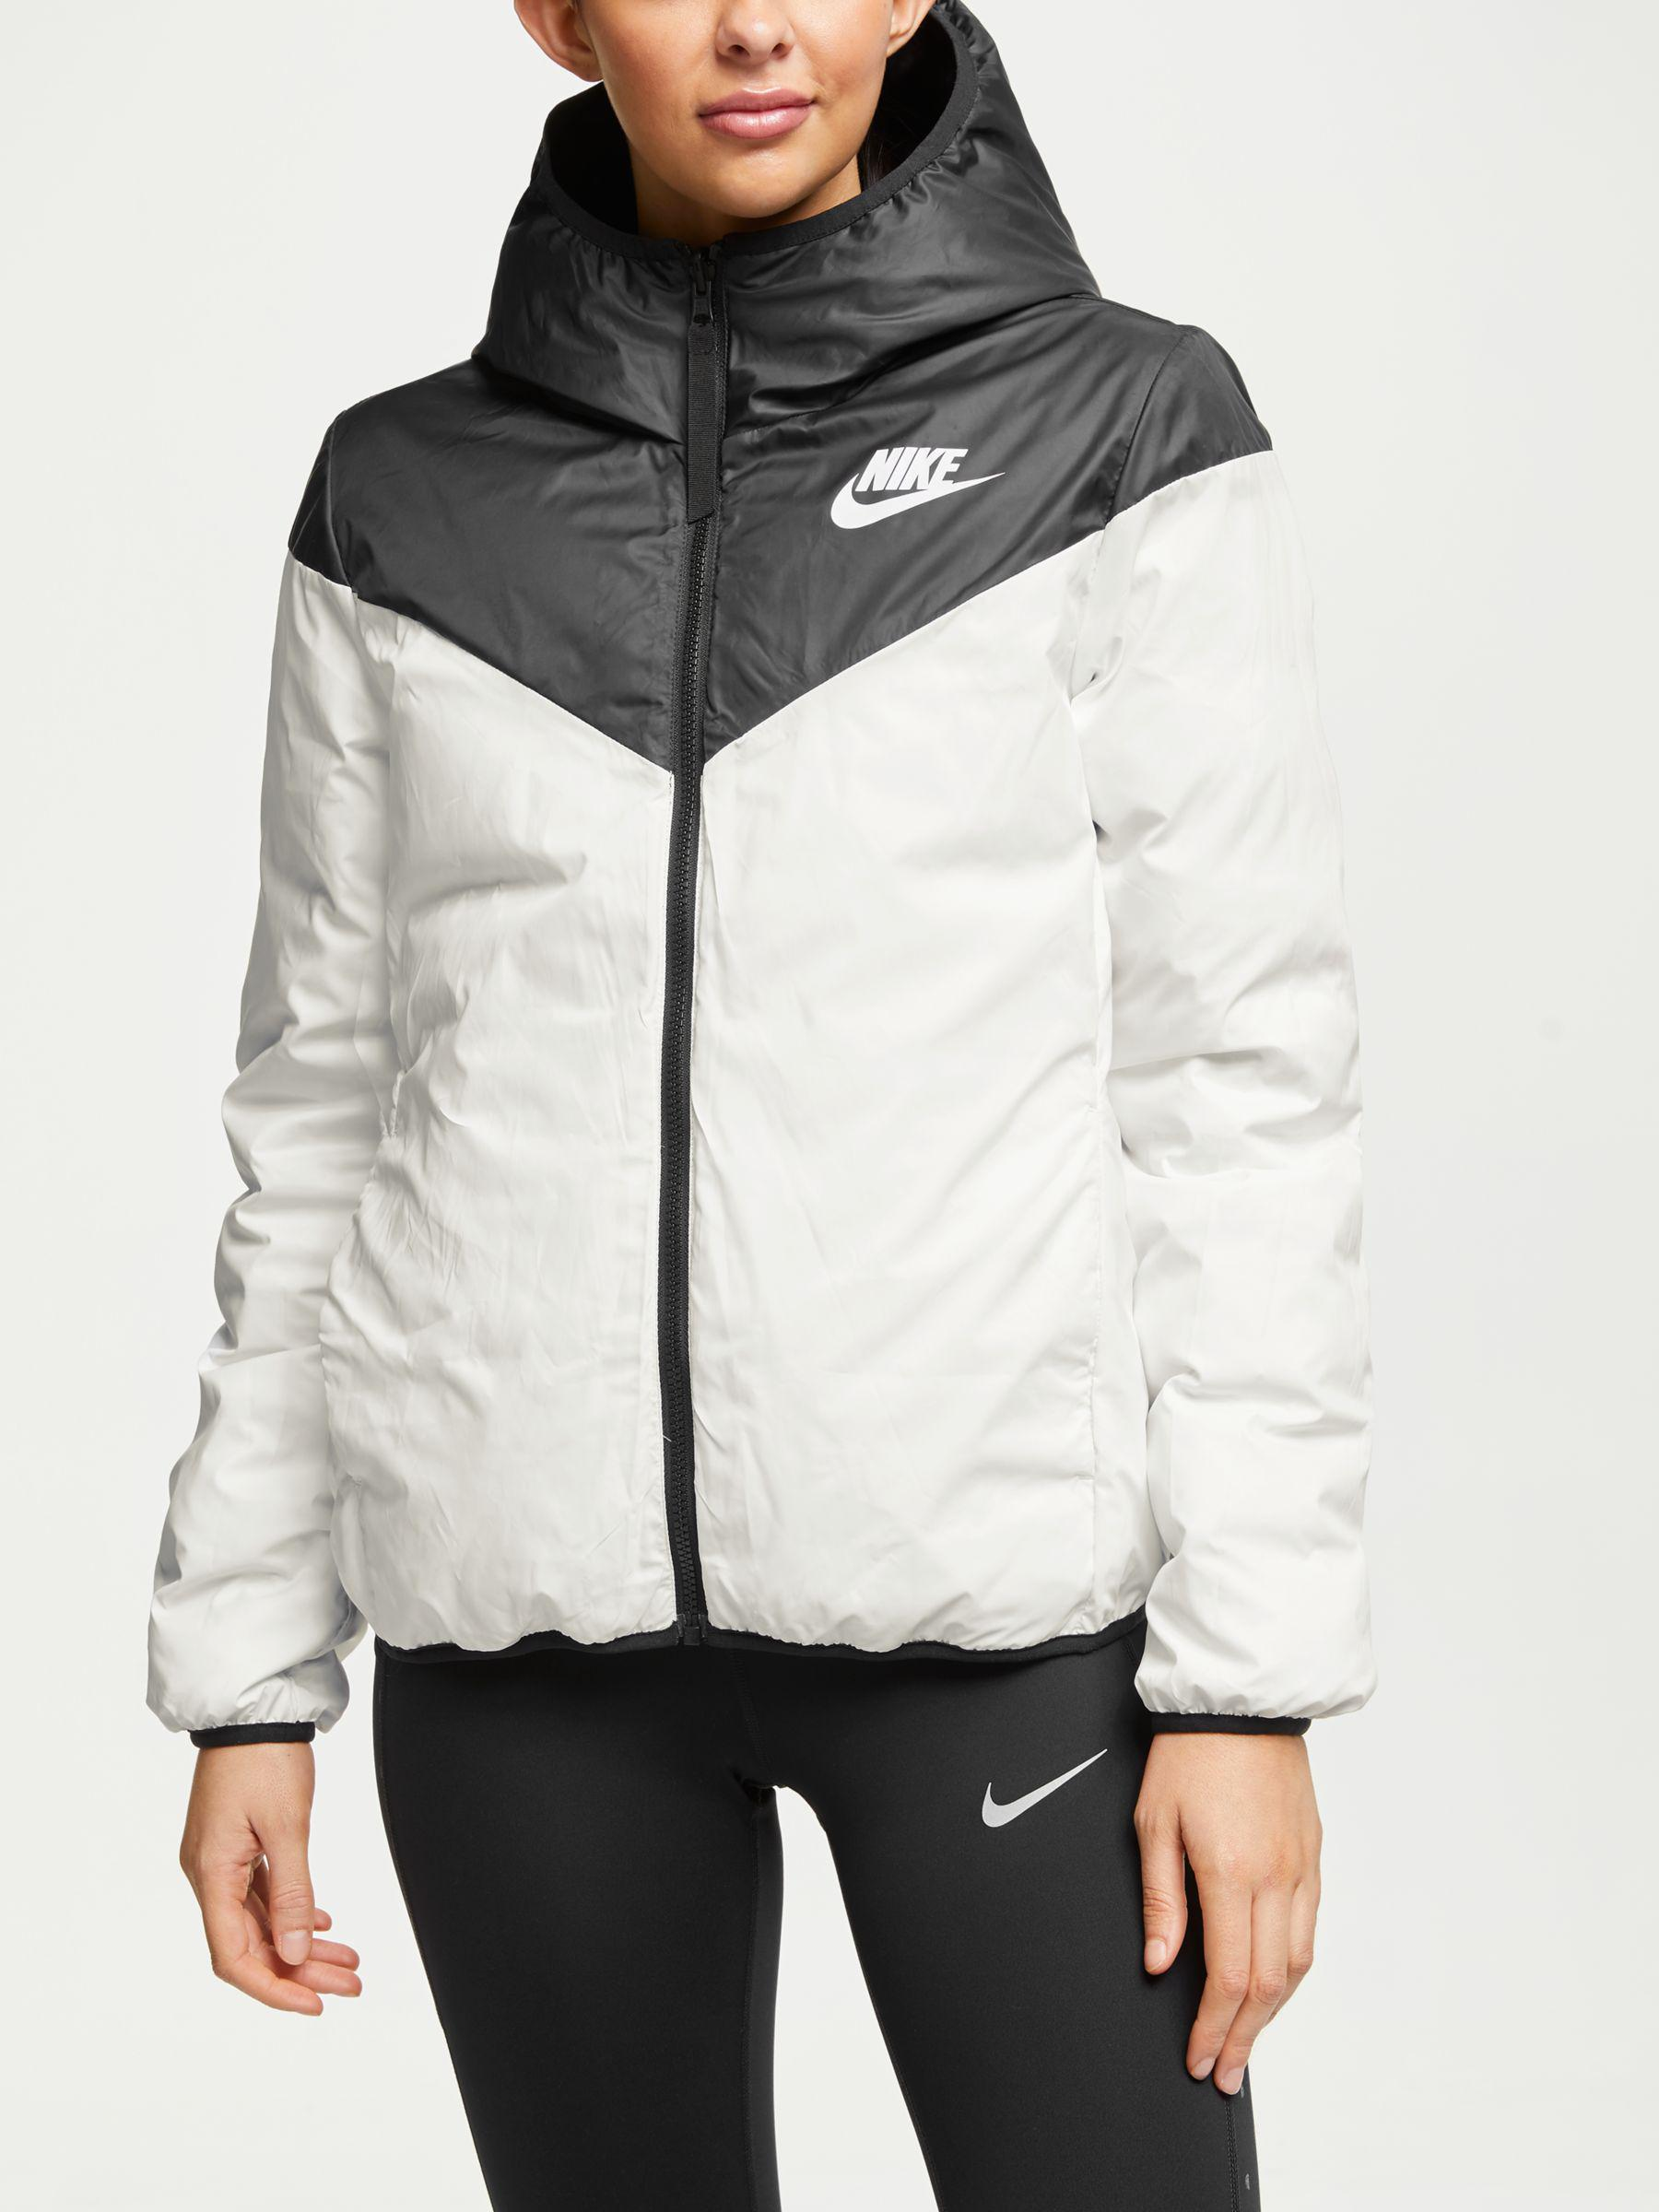 752e59ab23 Nike Sportswear Windrunner Women s Reversible Down Fill Jacket in ...